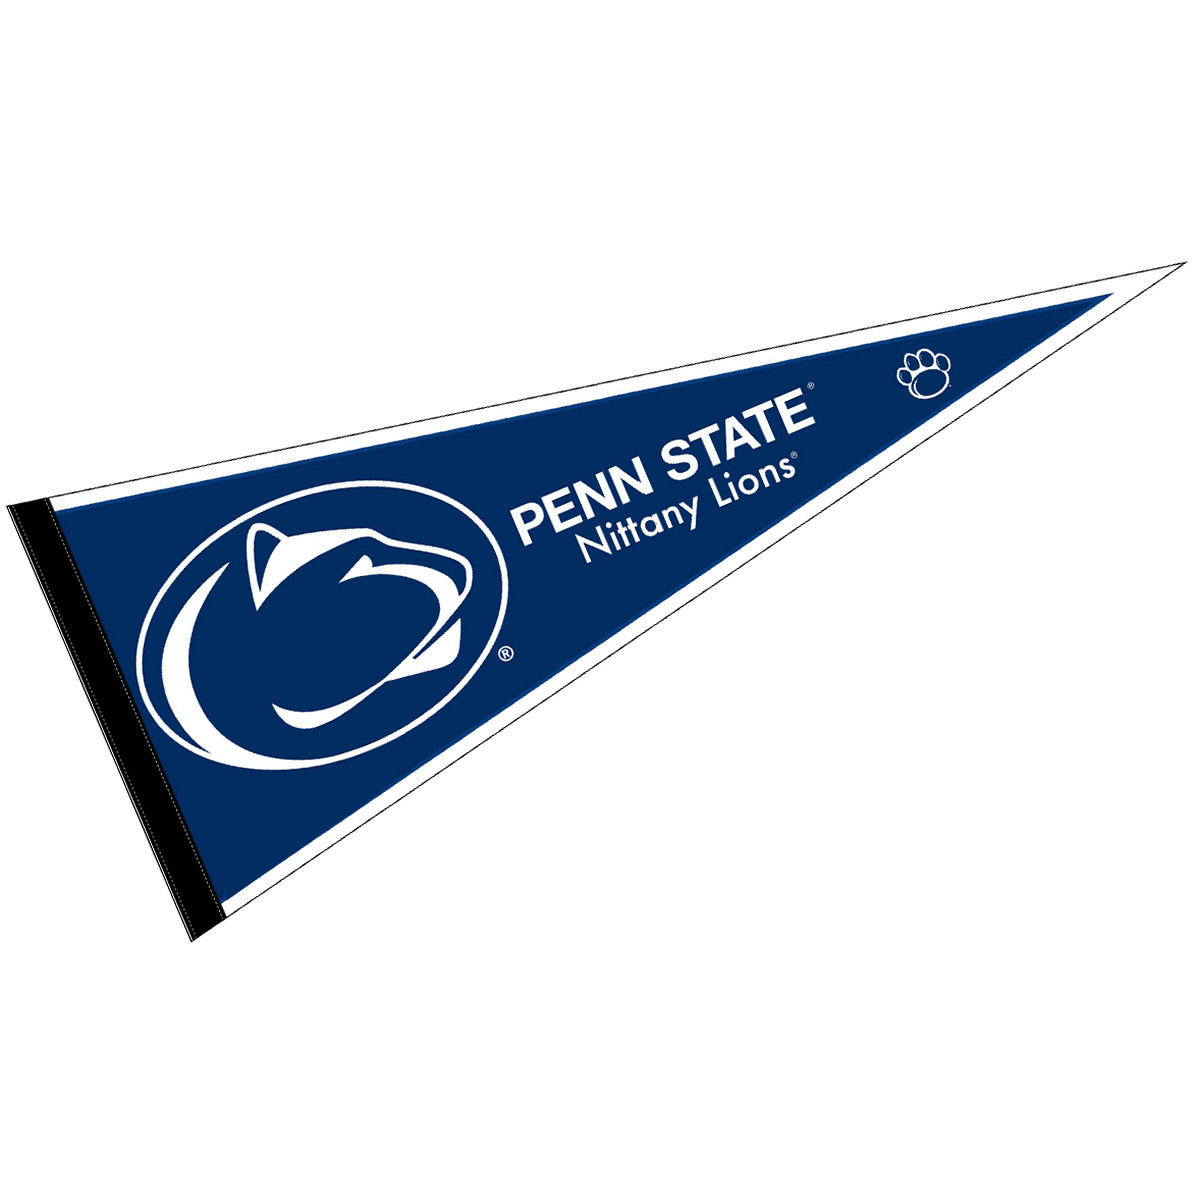 "Penn State Nittany Lions Blue 12"" X 30"" Felt College Pennant"